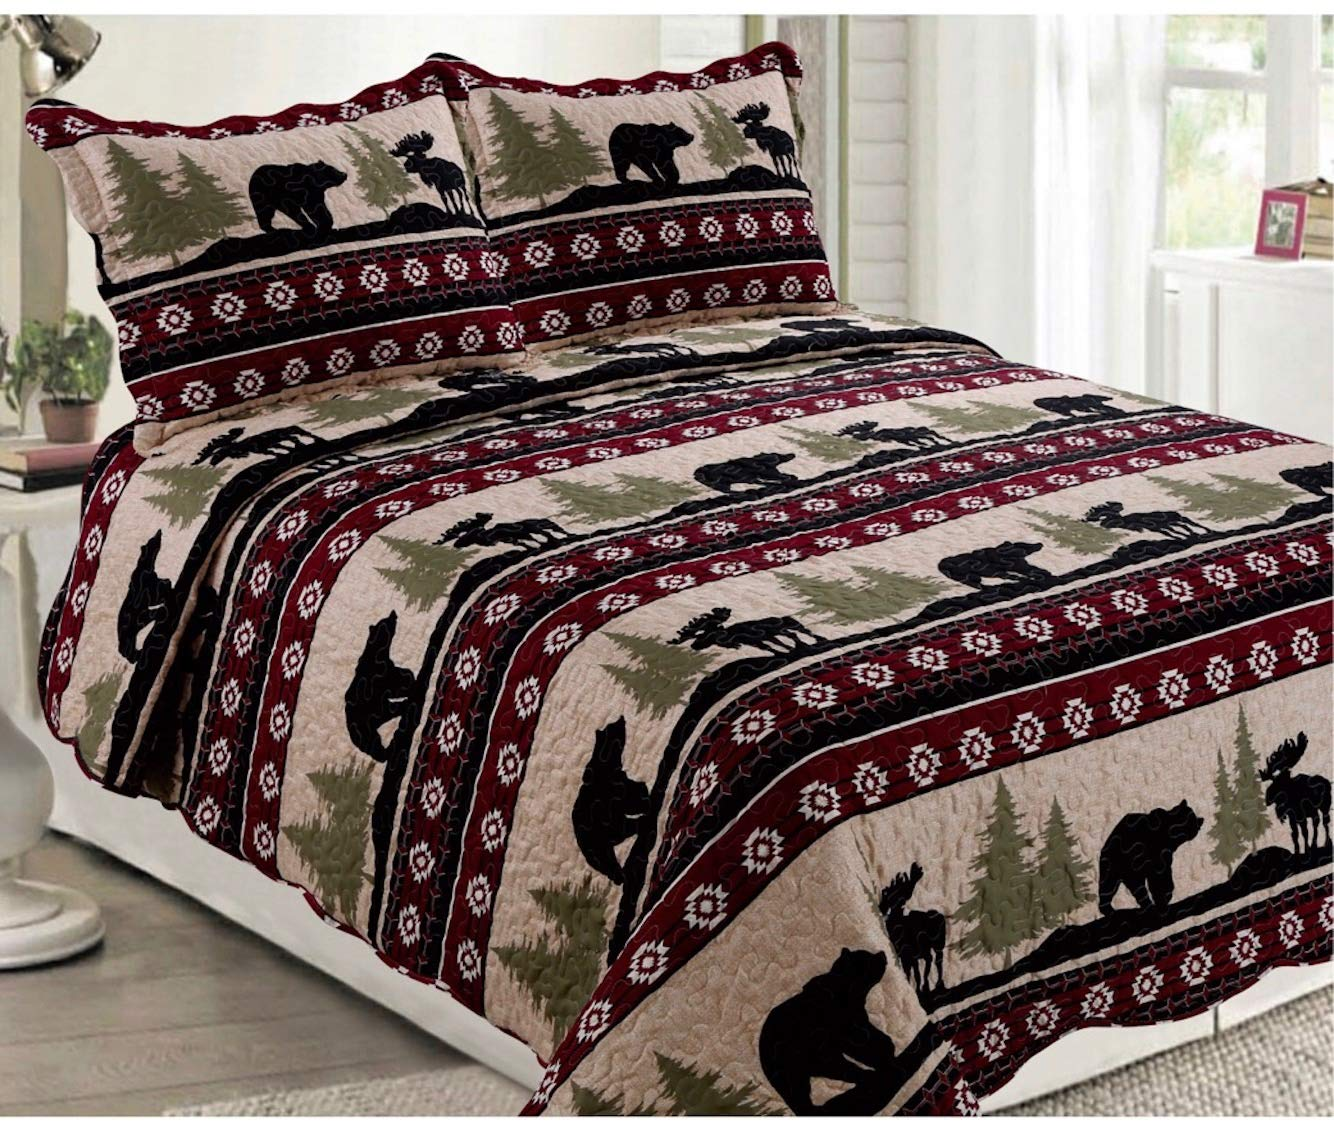 Elegant Home Rustic Western and Native American Wildlife Bear and Moose Wilderness Cabin Lodge Life Beige Green Black Burgundy Design 3 Piece Coverlet Bedspread Quilt # 17017 (King Size) Elegant Home Decor